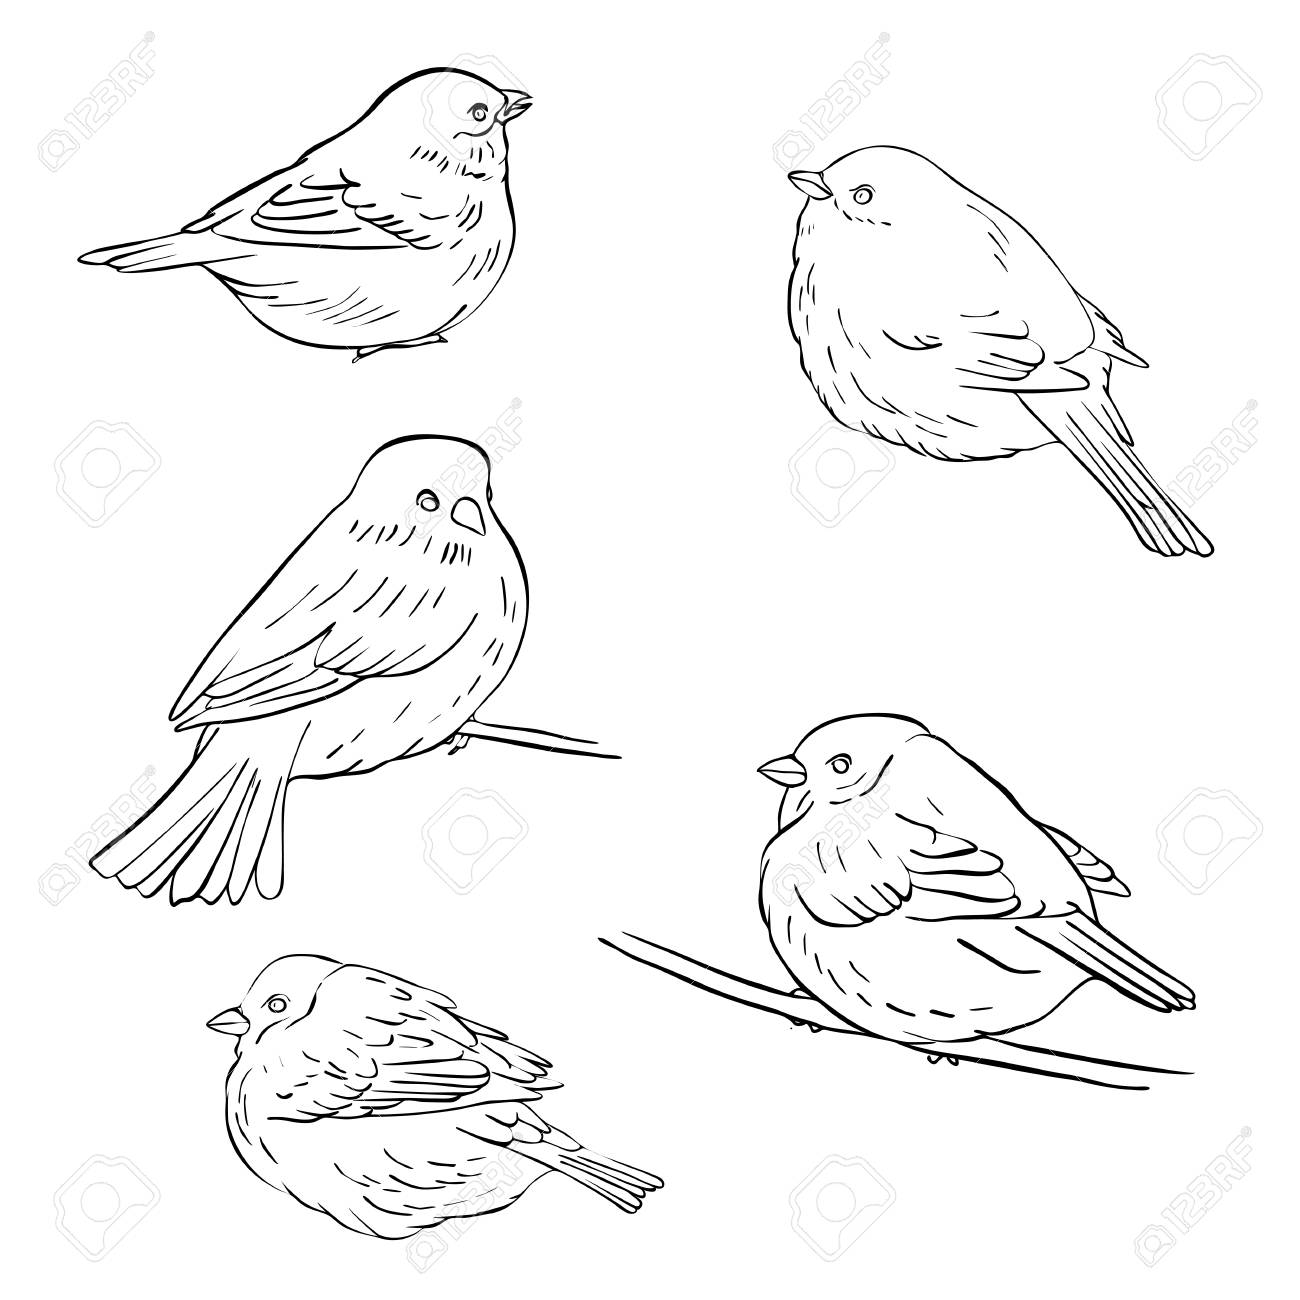 Vector Line Drawing Bird Sitting At Tree Branch Sketch Of Sparrow